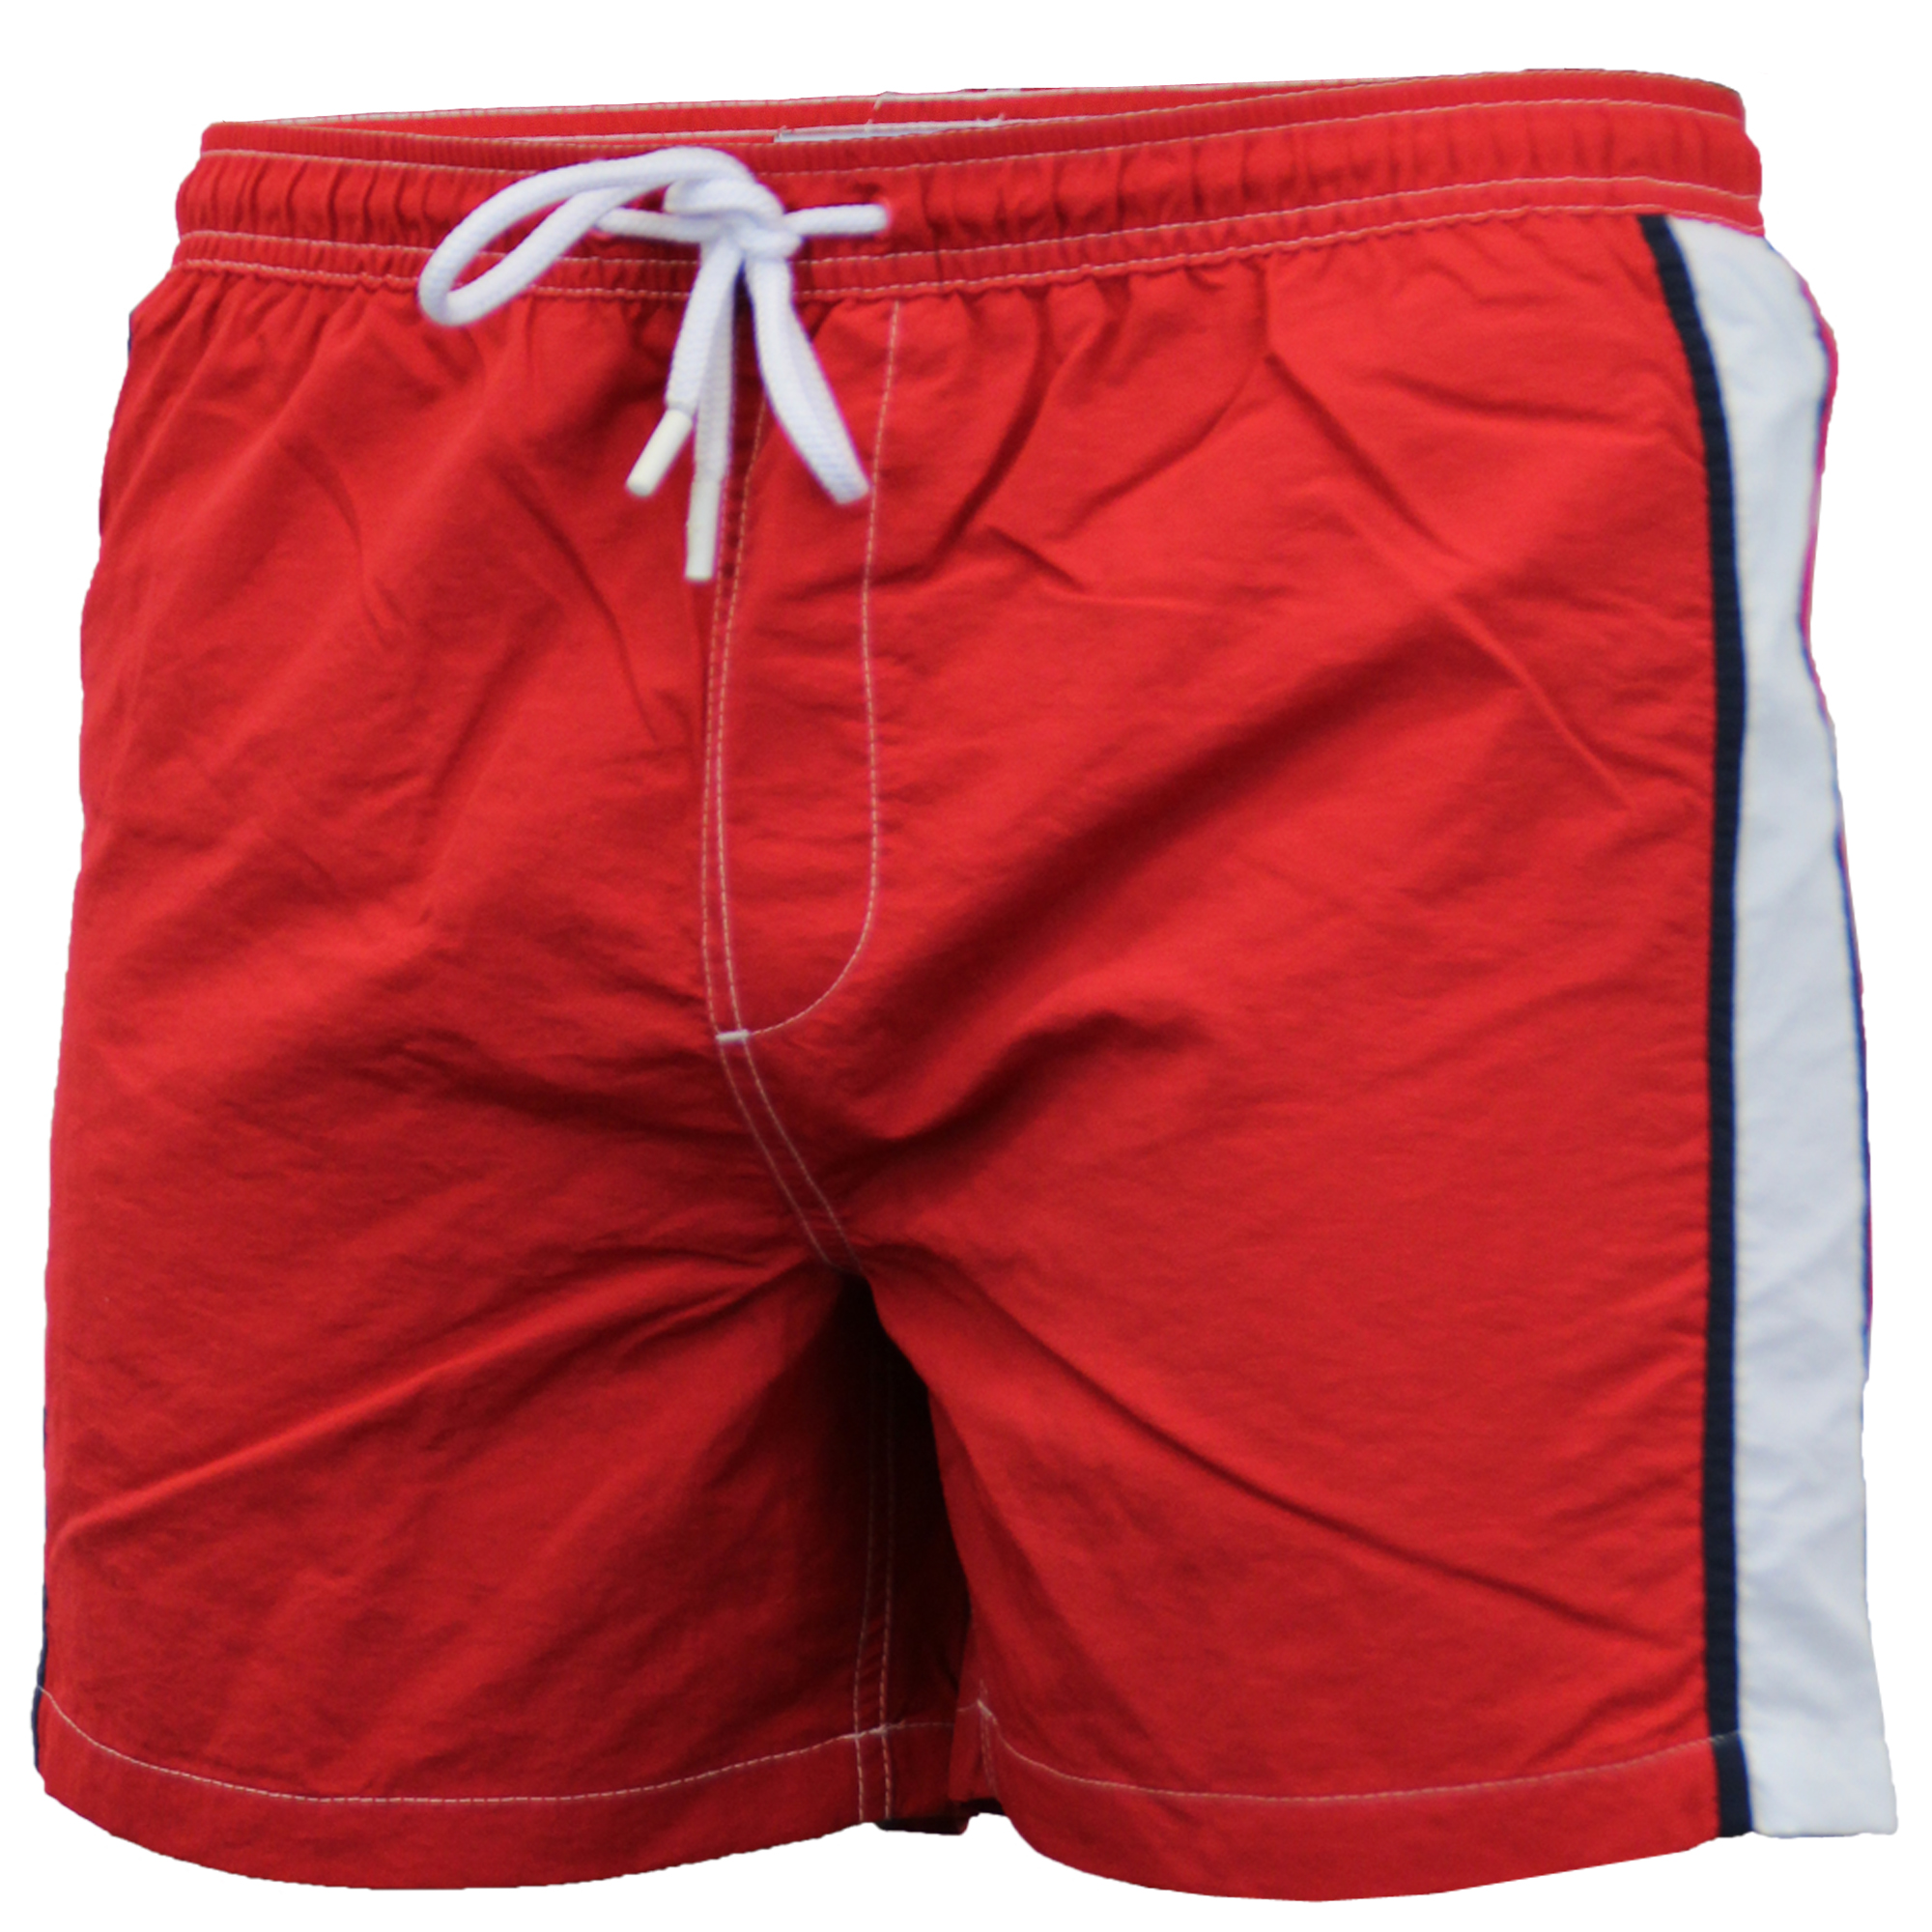 Mens-Swim-Board-Shorts-By-Brave-Soul-Mesh-Lined-New thumbnail 50